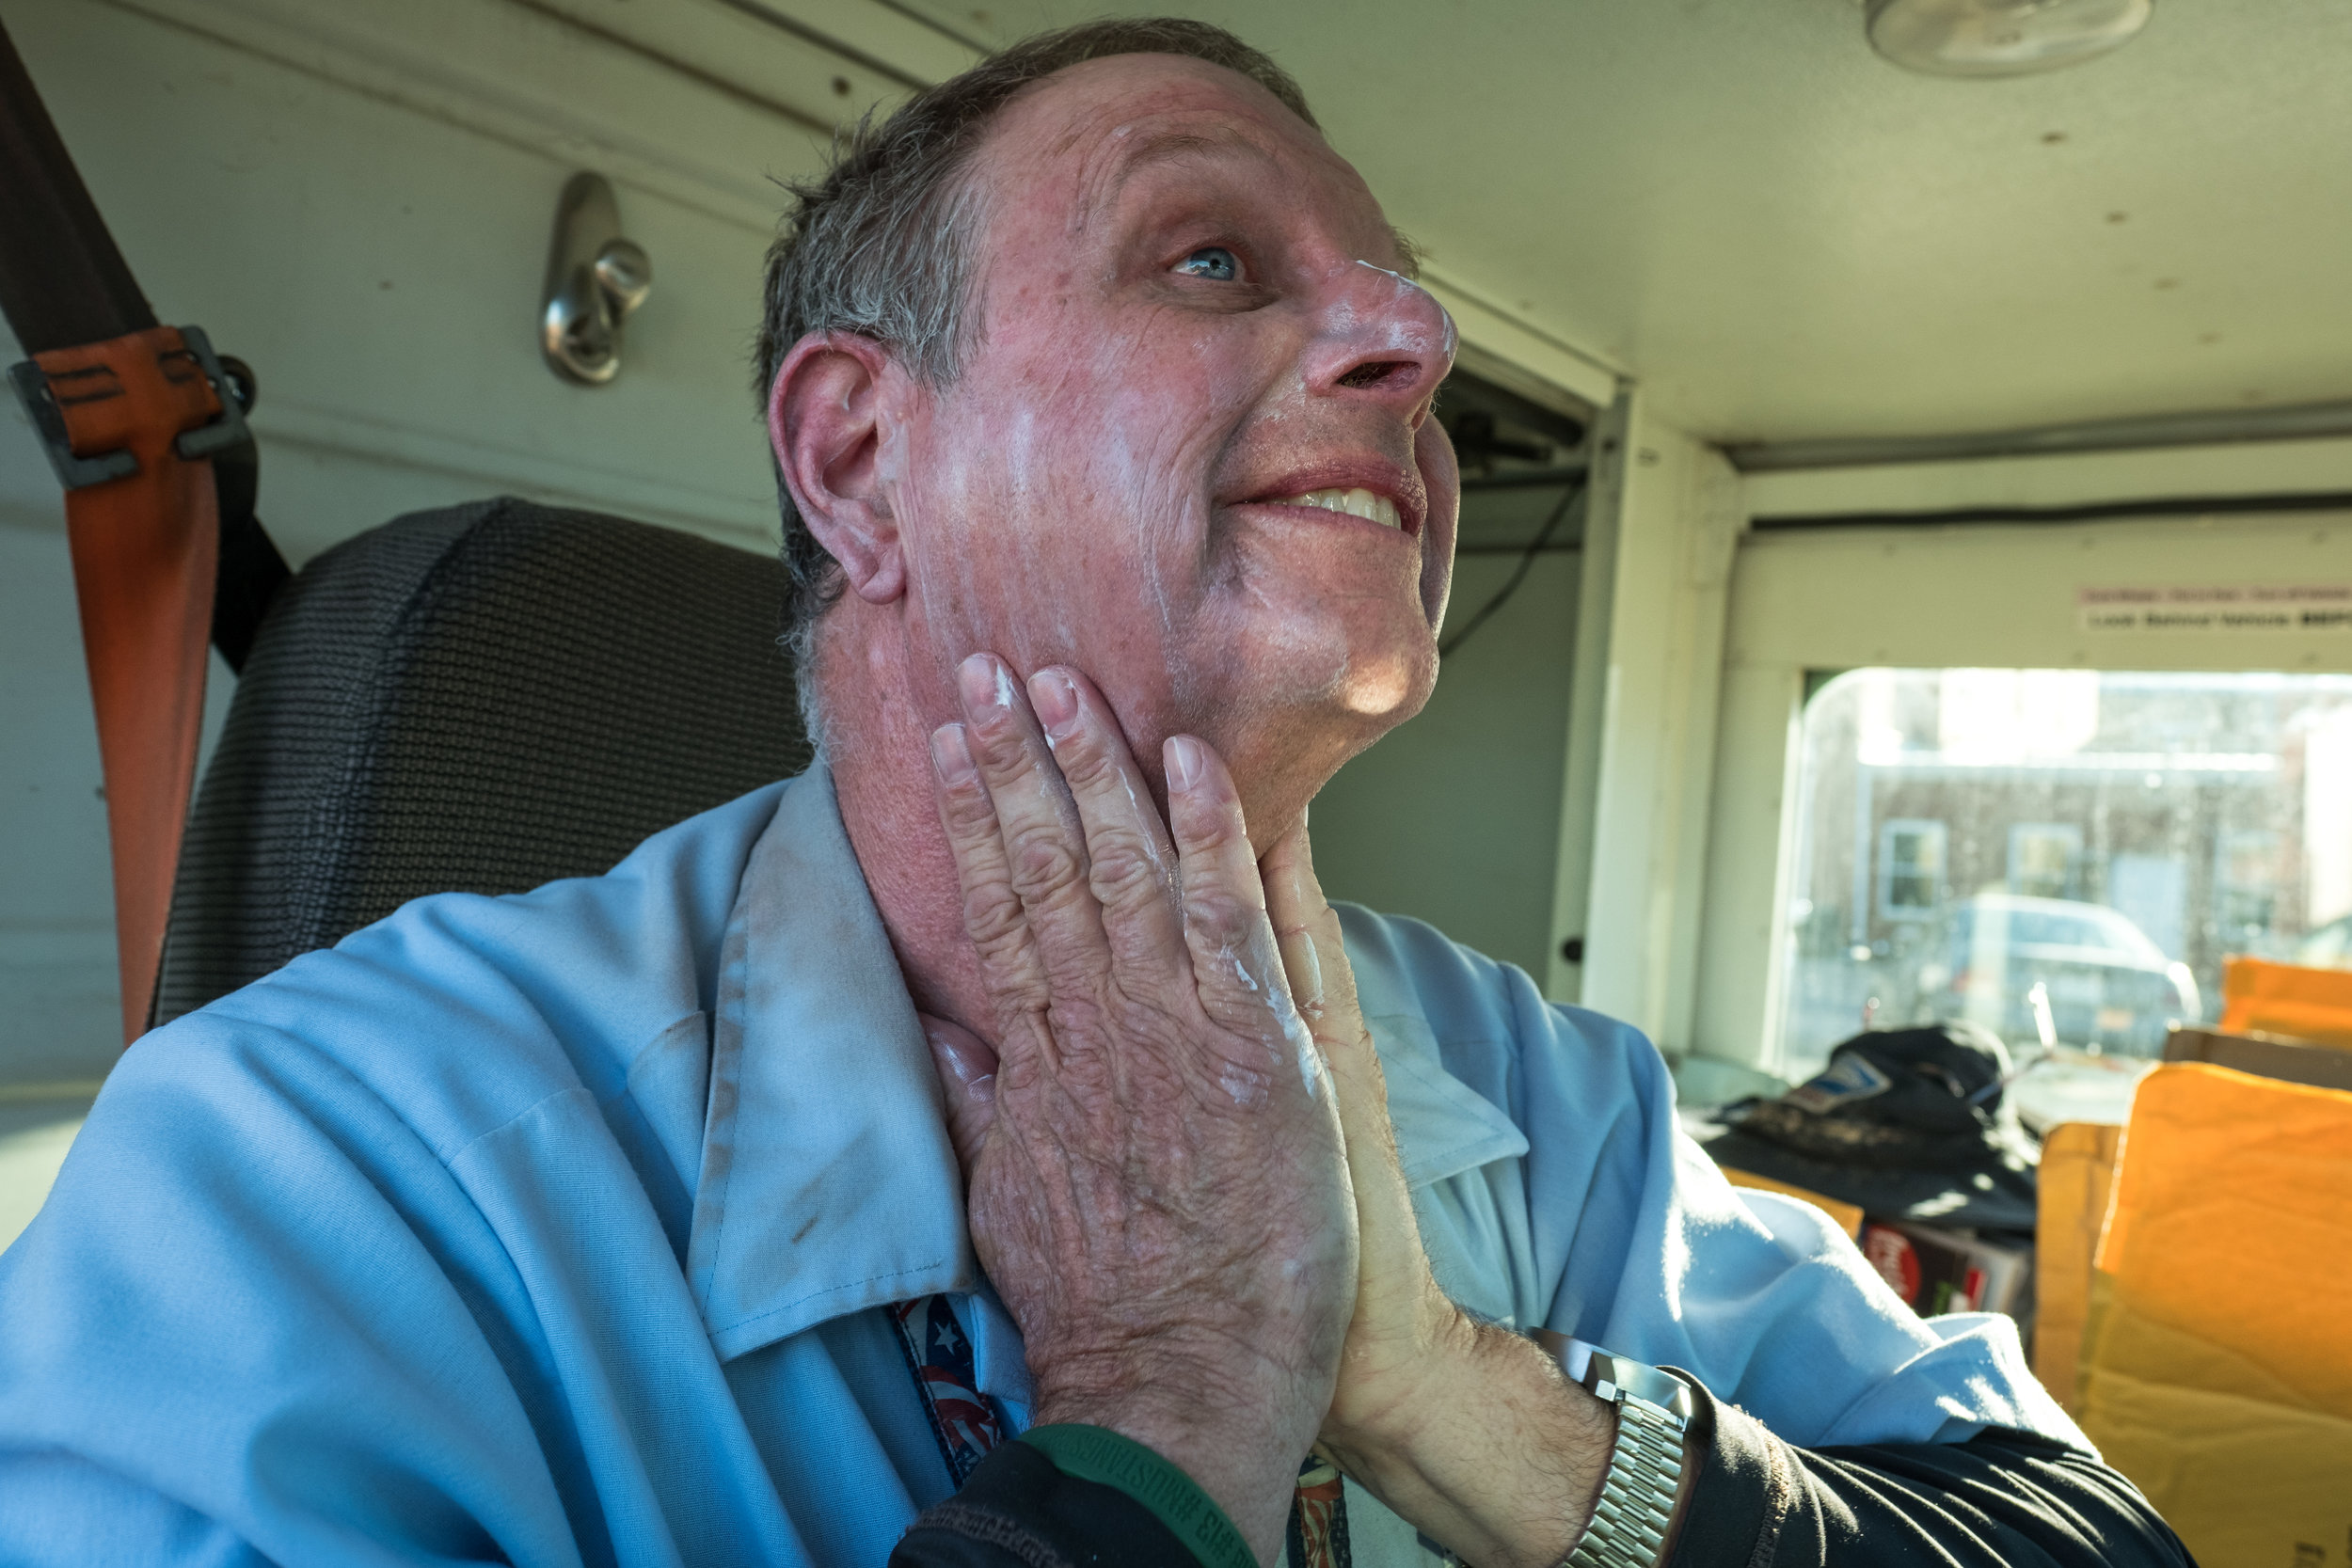 Greg's dermatologist recommends he don sunscreen every day and wear long sleeves. Greg has had pre-cancerous spots removed due to excessive sun exposure.